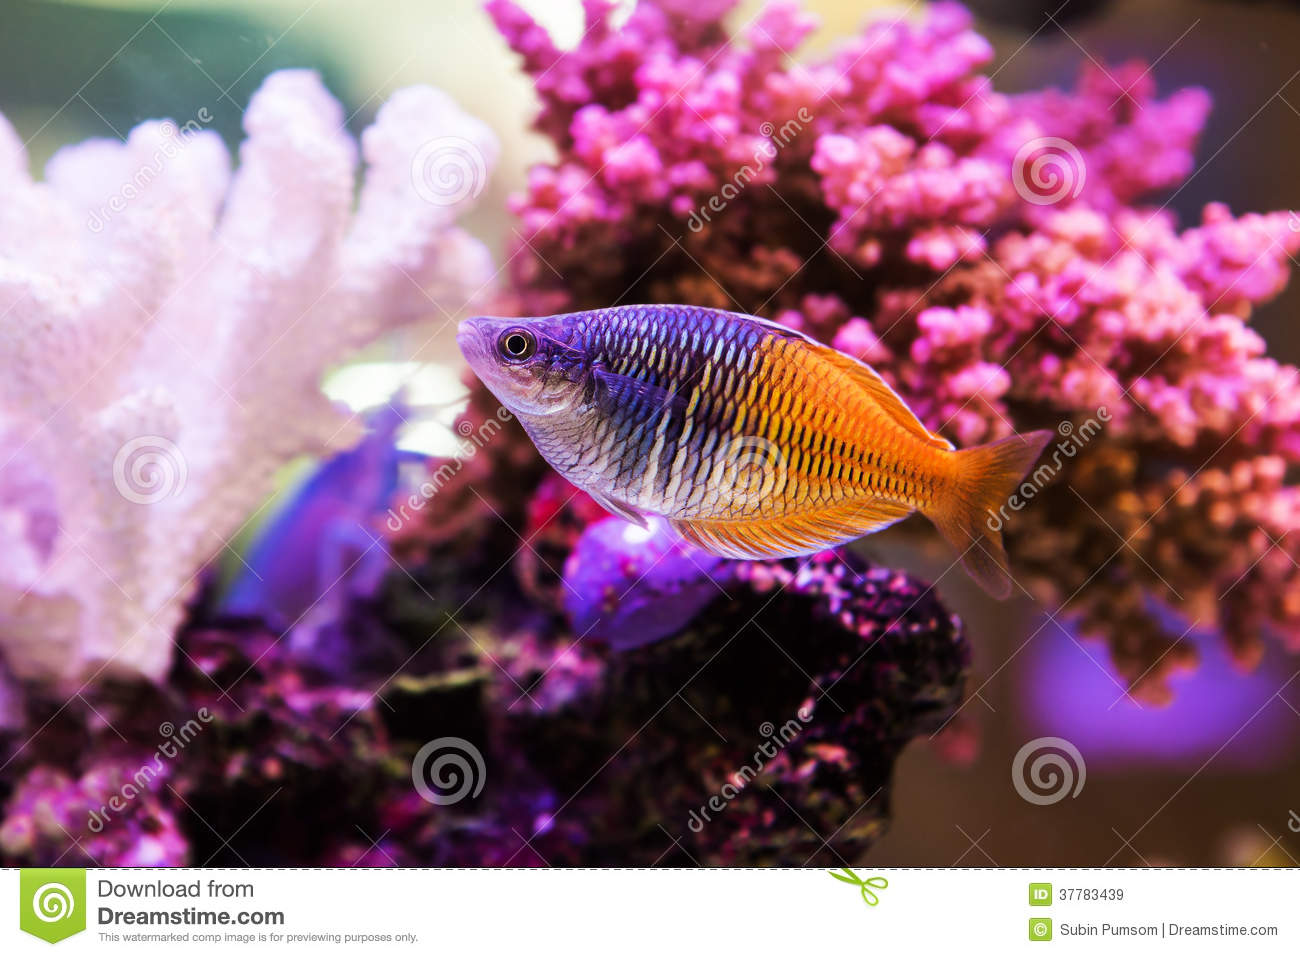 Cute fish 4 hd wallpaper for Cute freshwater fish